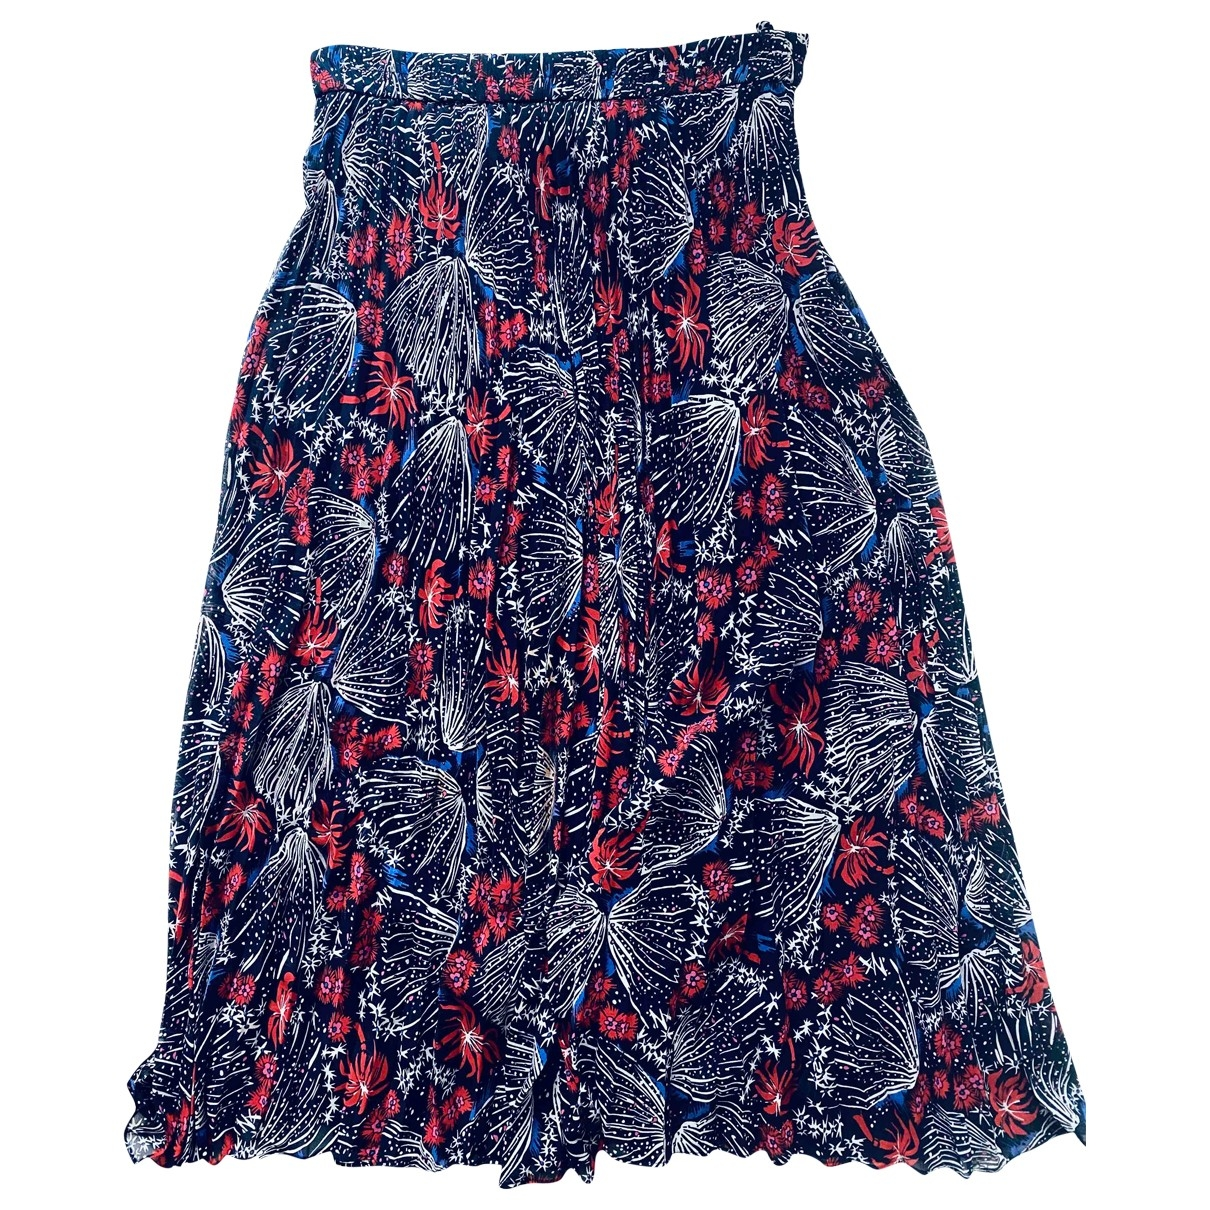 & Other Stories - Jupe   pour femme - multicolore